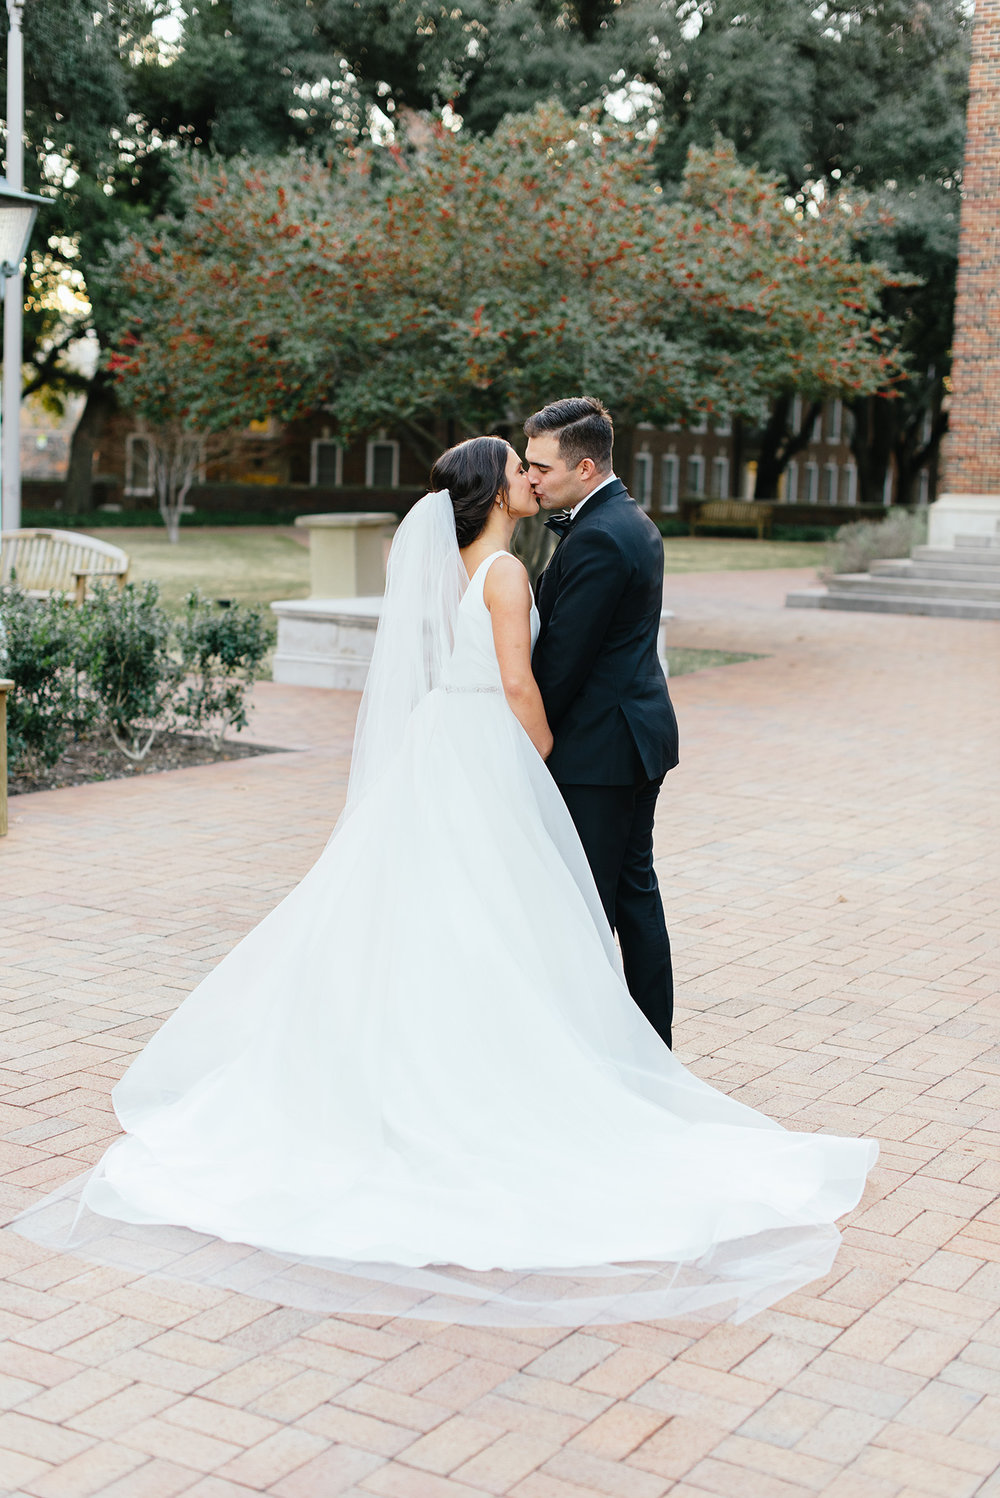 MattAndJulieWeddings-PerkensChapelWedding-RoomonMain-Alyssa+Chris358.jpg